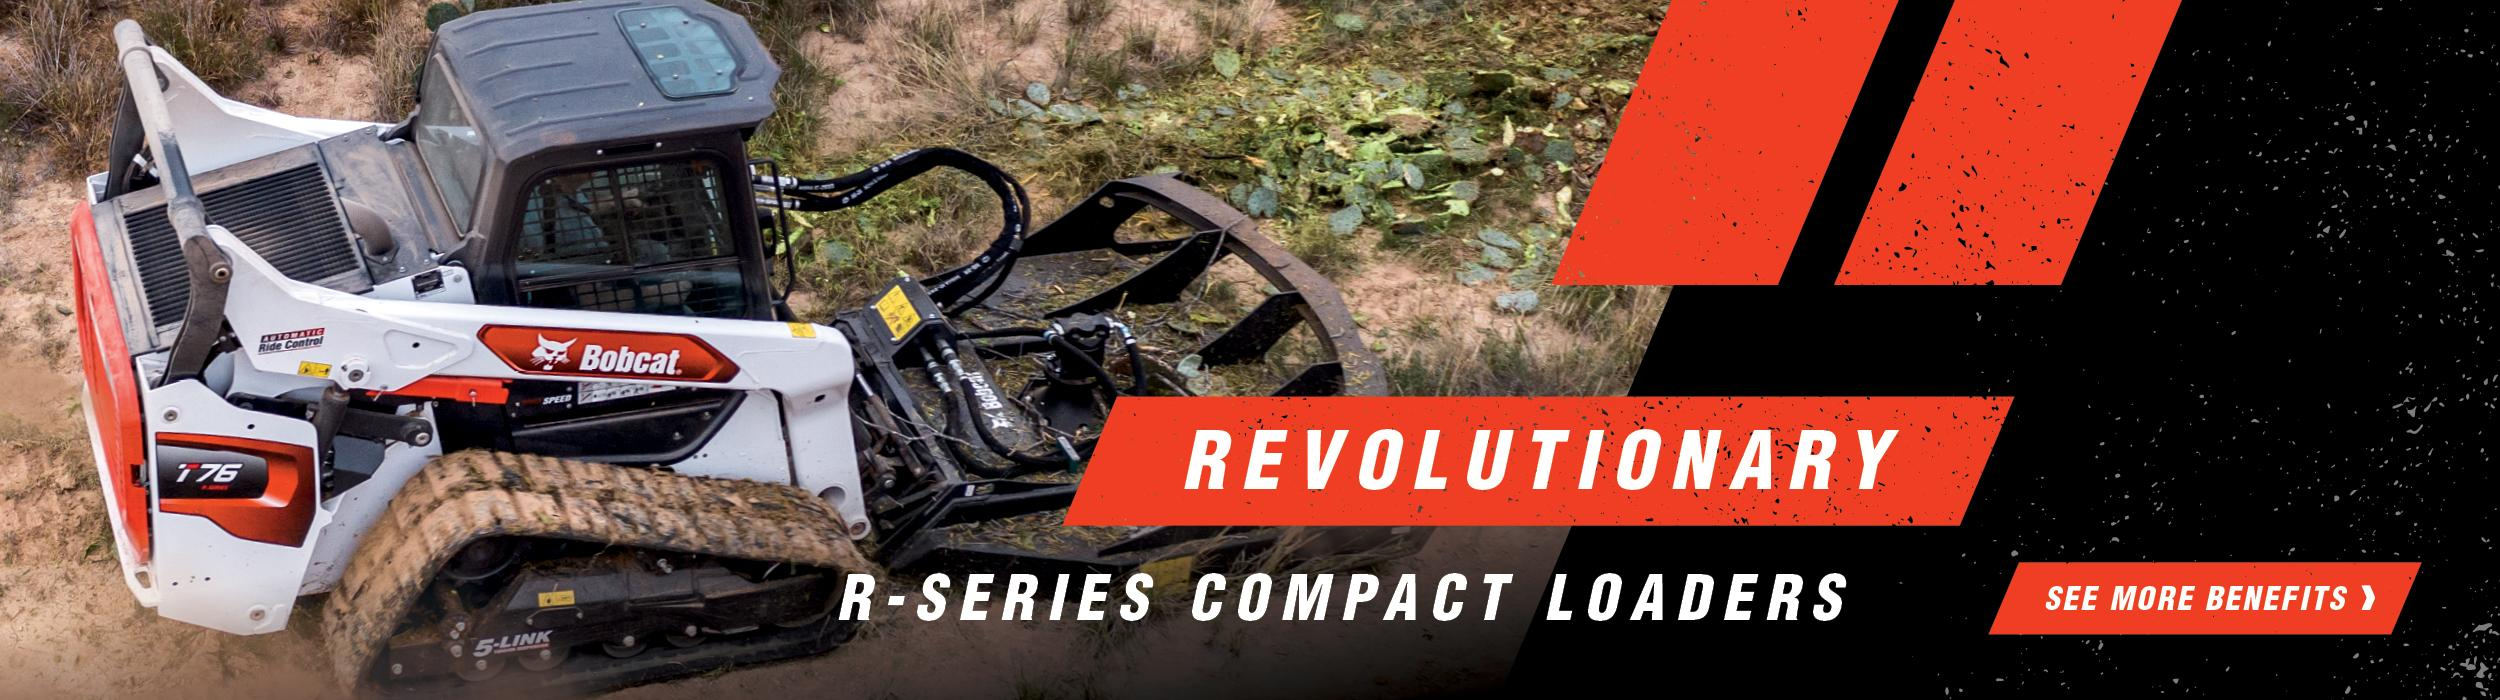 Graphic of Revolutionary R-Series Compact Loaders